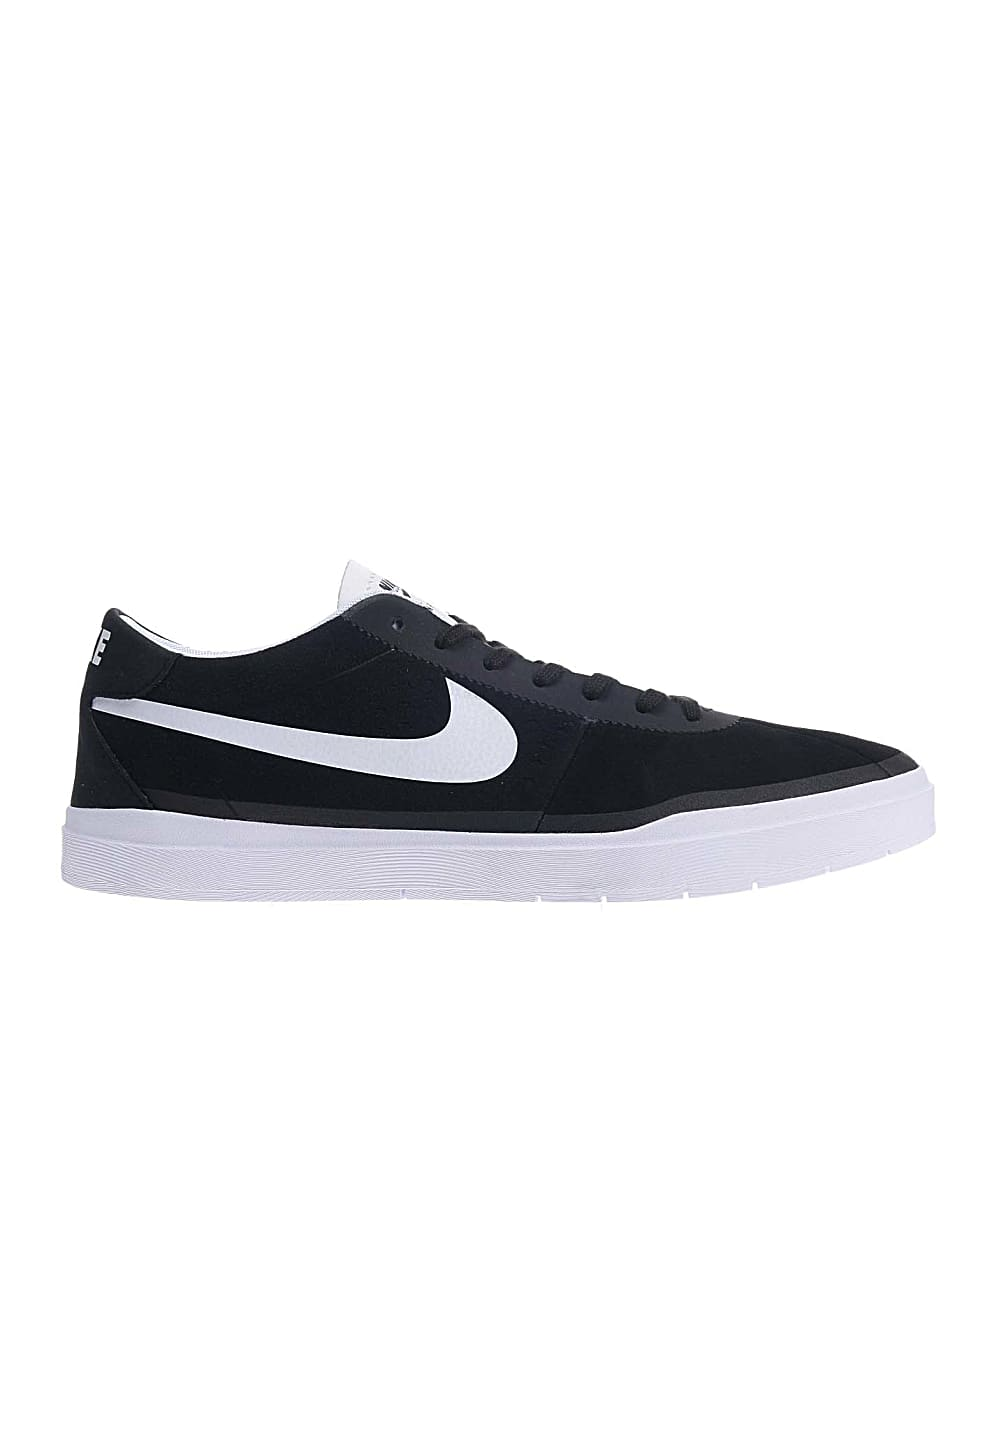 Nike Sb Bruin Hyperfeel Black White Skate Shoes